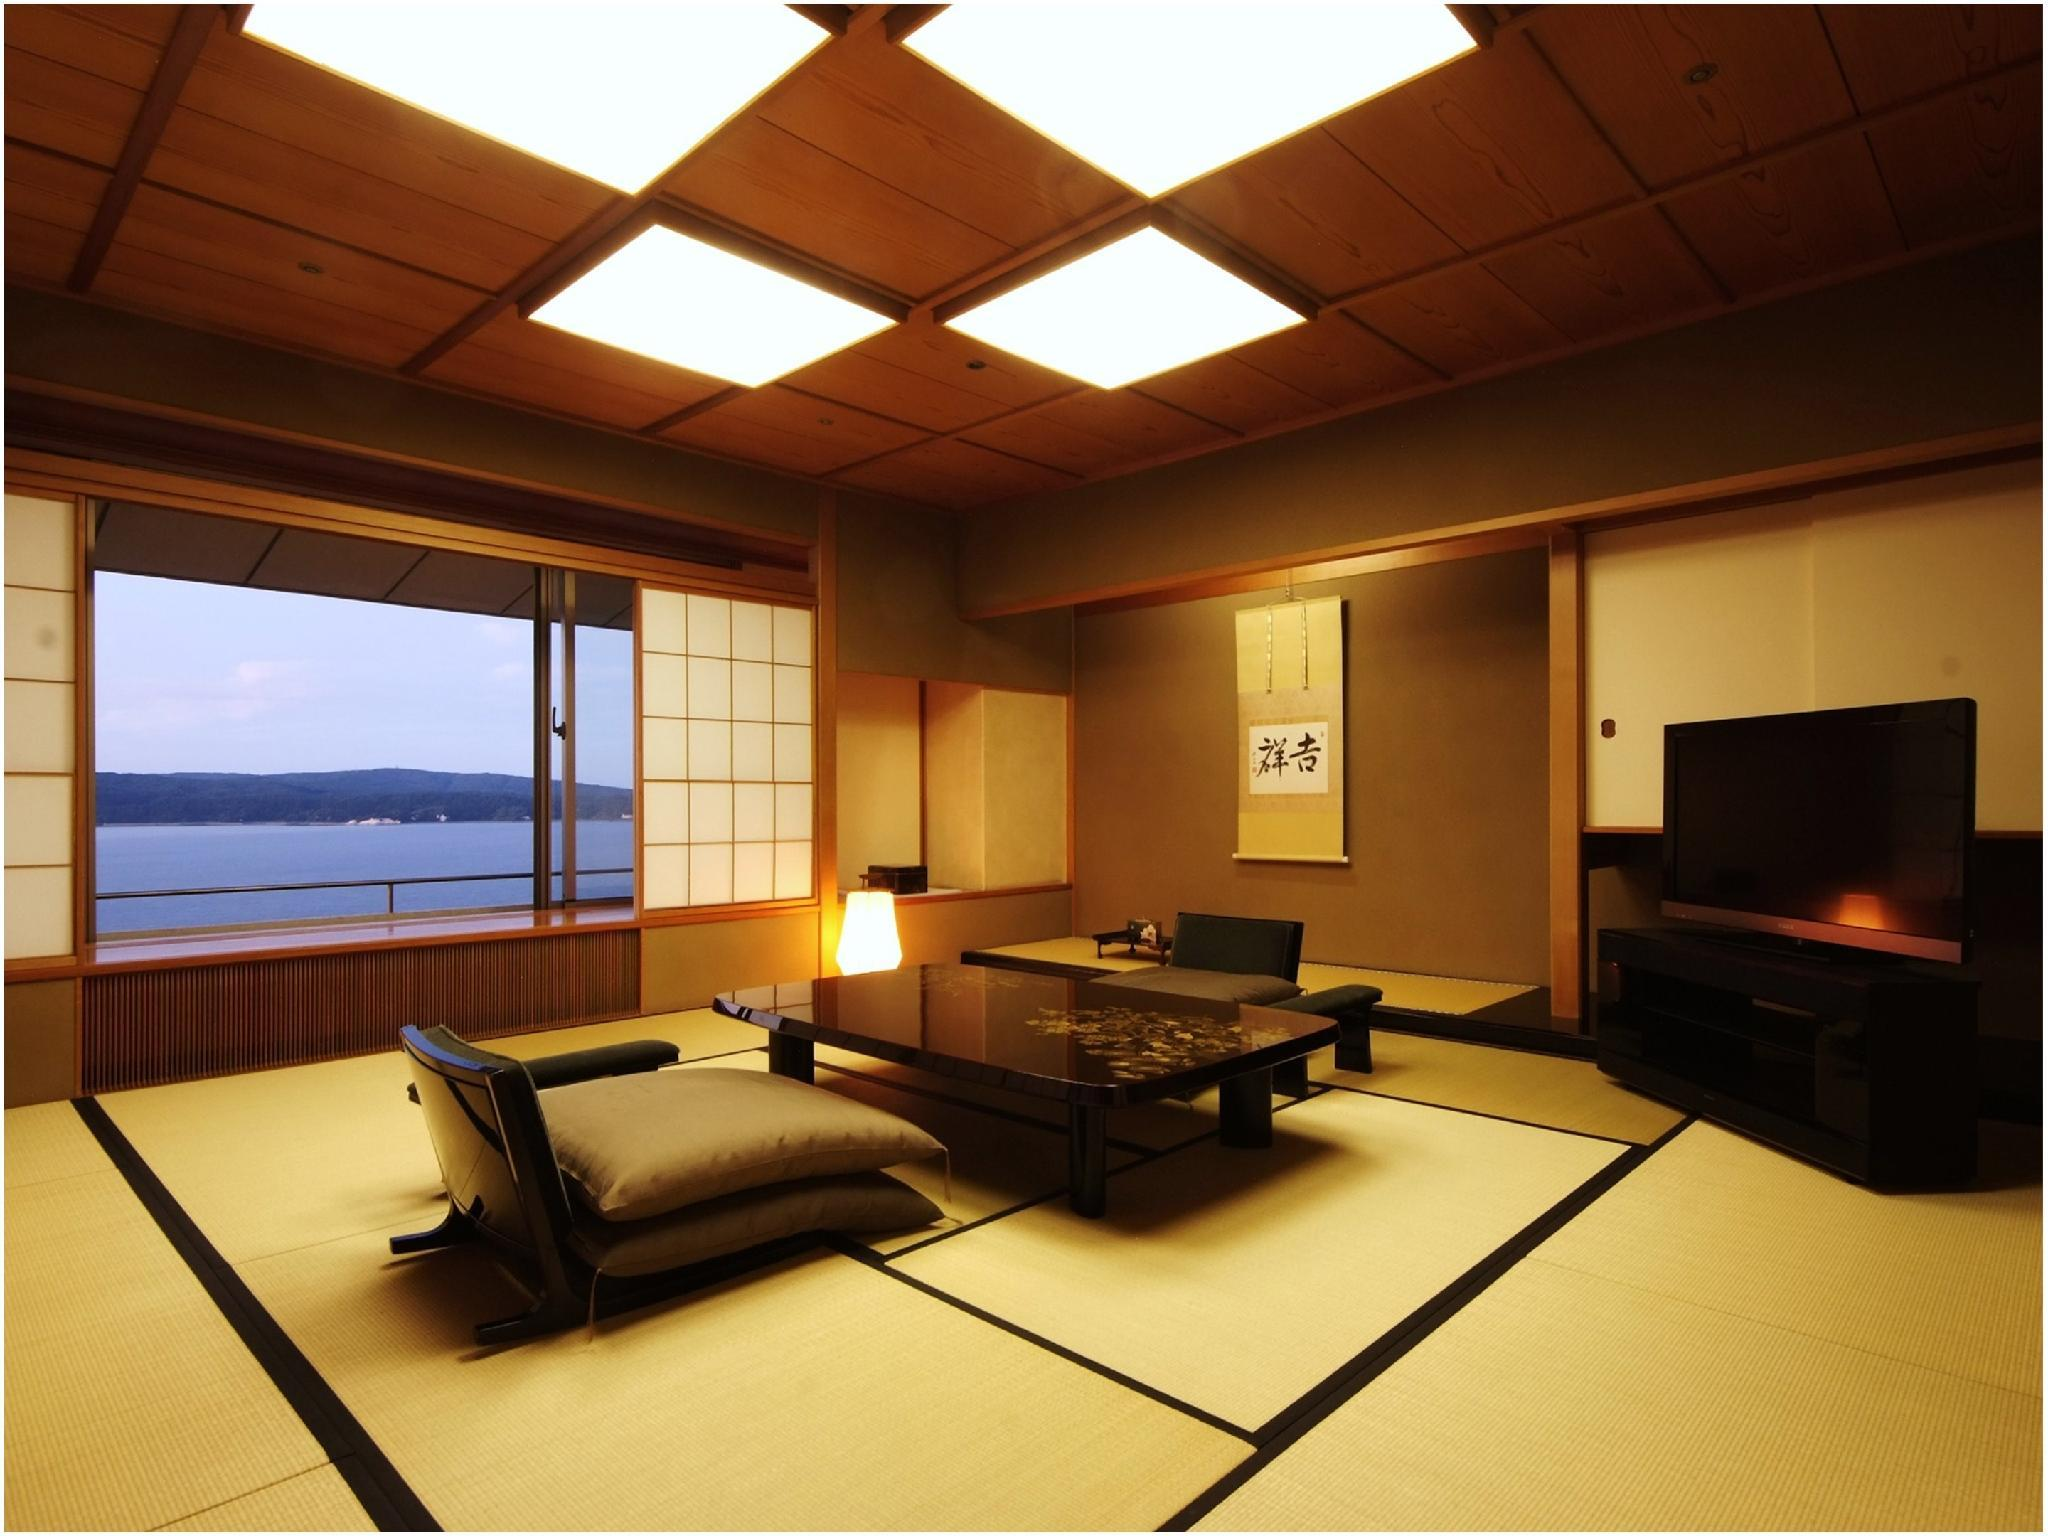 滨离宫 海景 和洋式房(行政双人双床房) (Executive Japanese/Western-style Room (Twin Beds, Hamarikyu Wing) *Ocean side view)